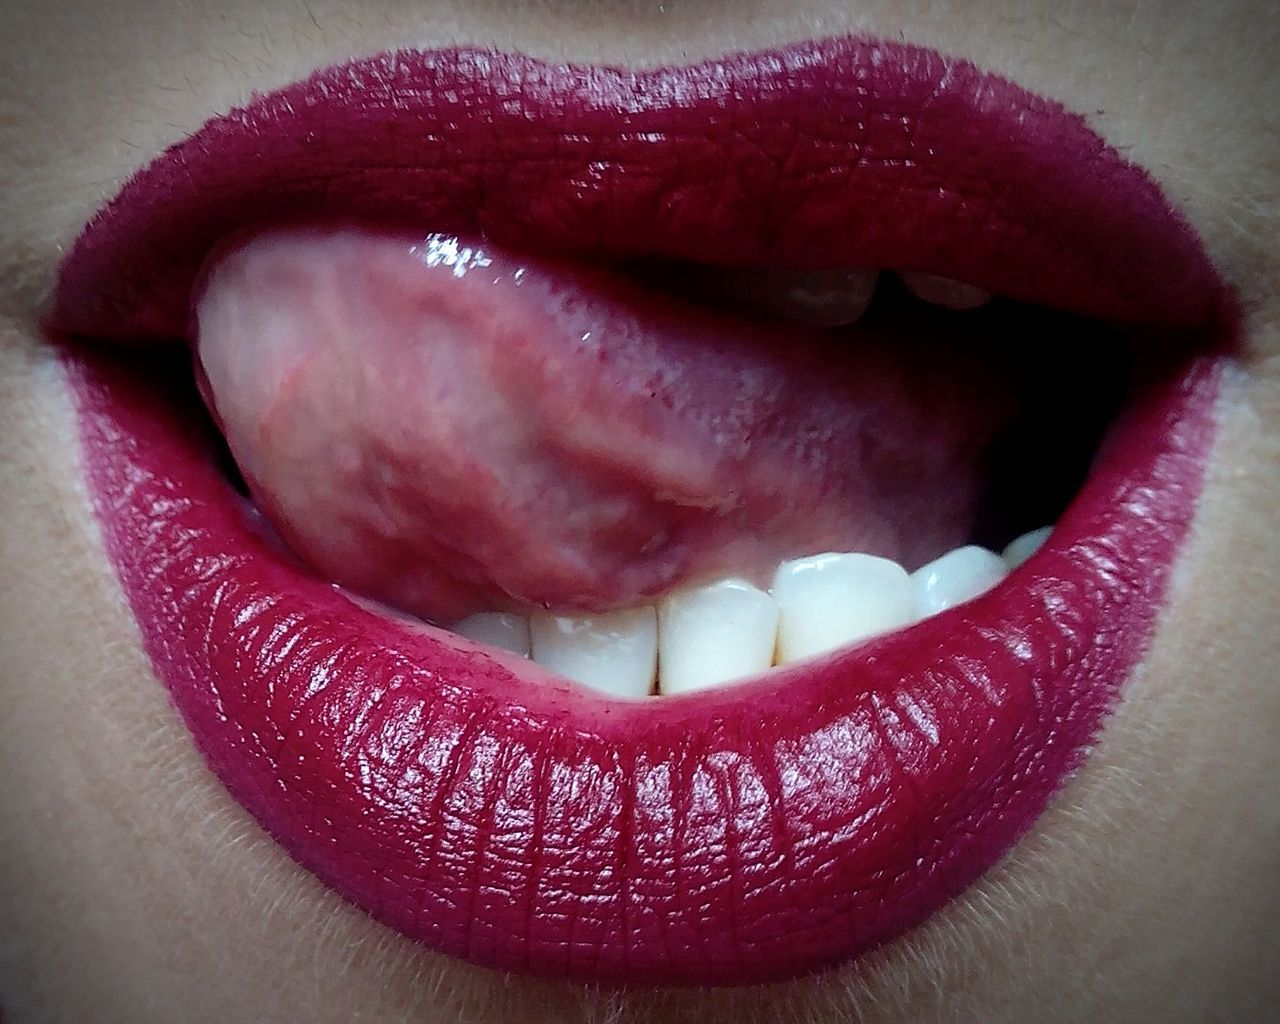 My Lips Lipstick Showing Imperfection Women Of EyeEm Woman Lips Marsala Marsalacolor Woman Face Woman Model Mouth/Lips Album Mouth Open Mouth Wide Open